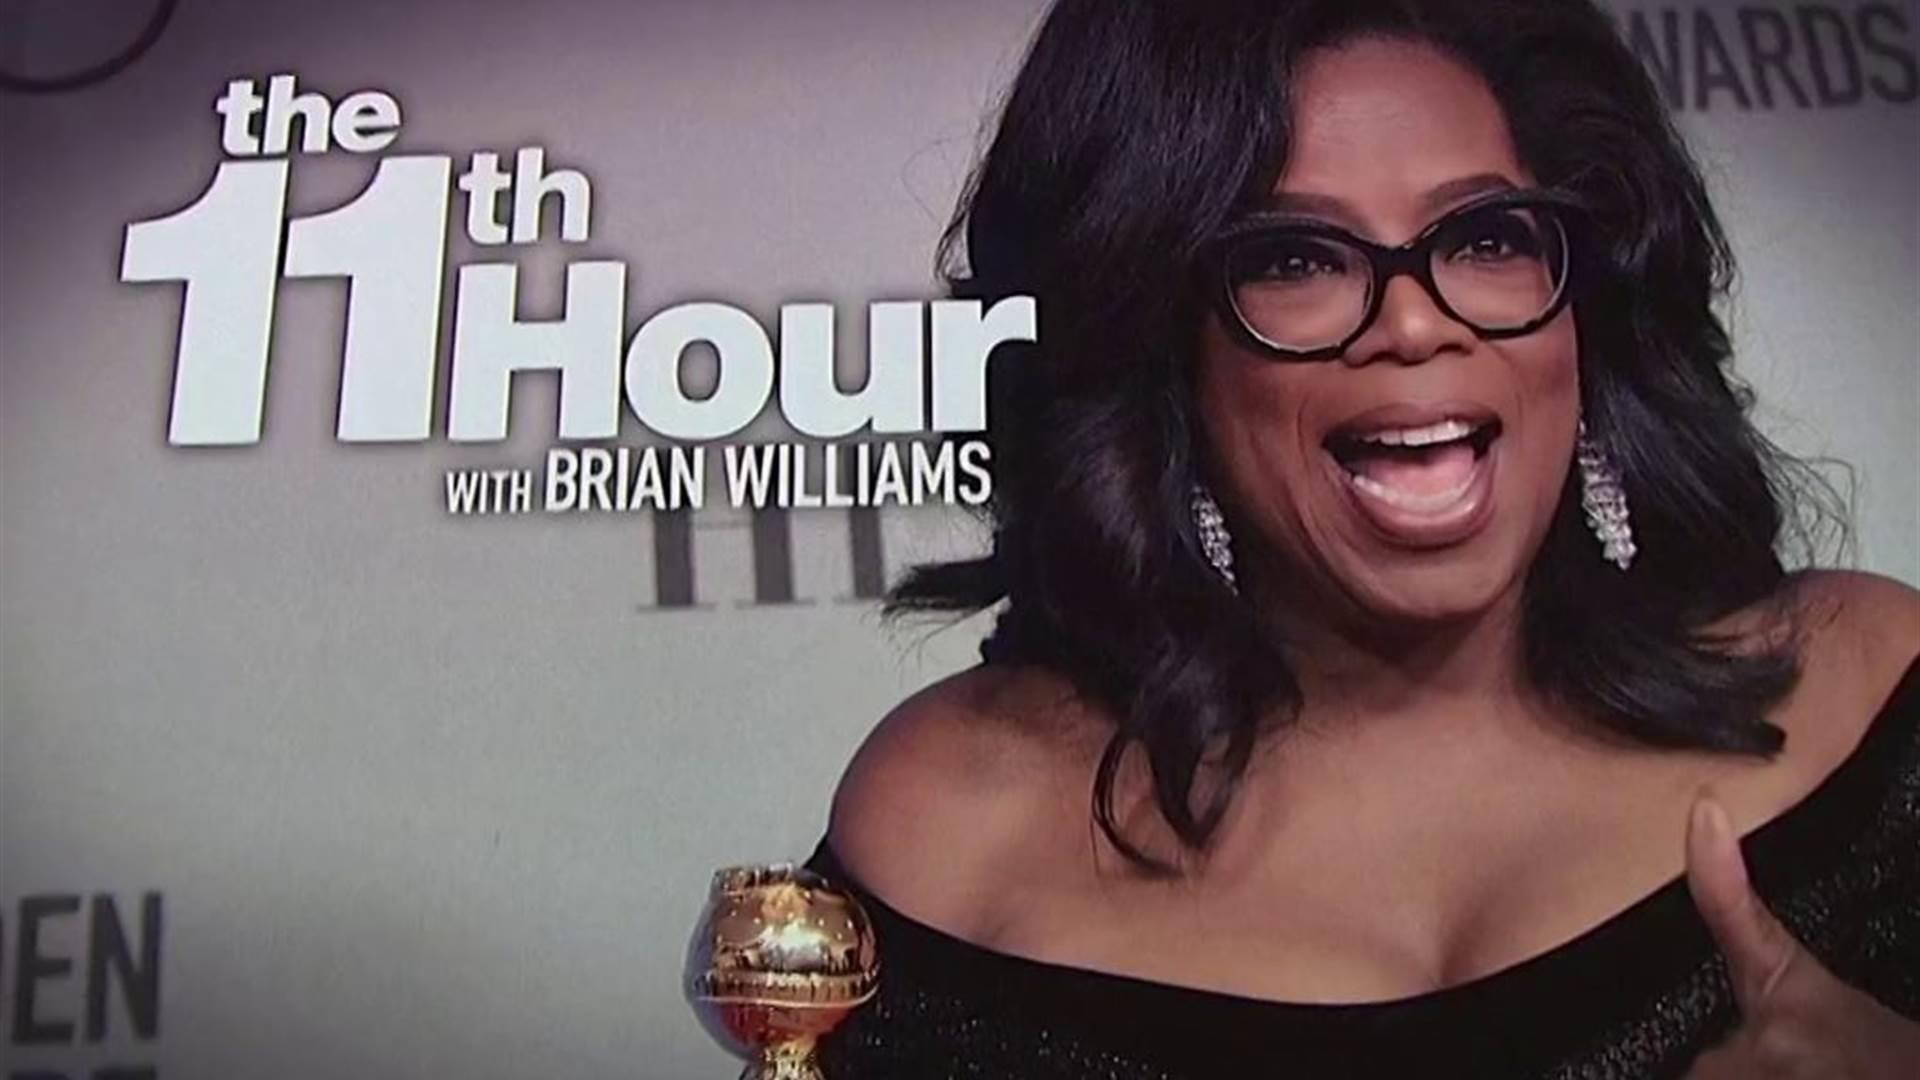 Trump: Oprah won't run in 2020, but I could beat her